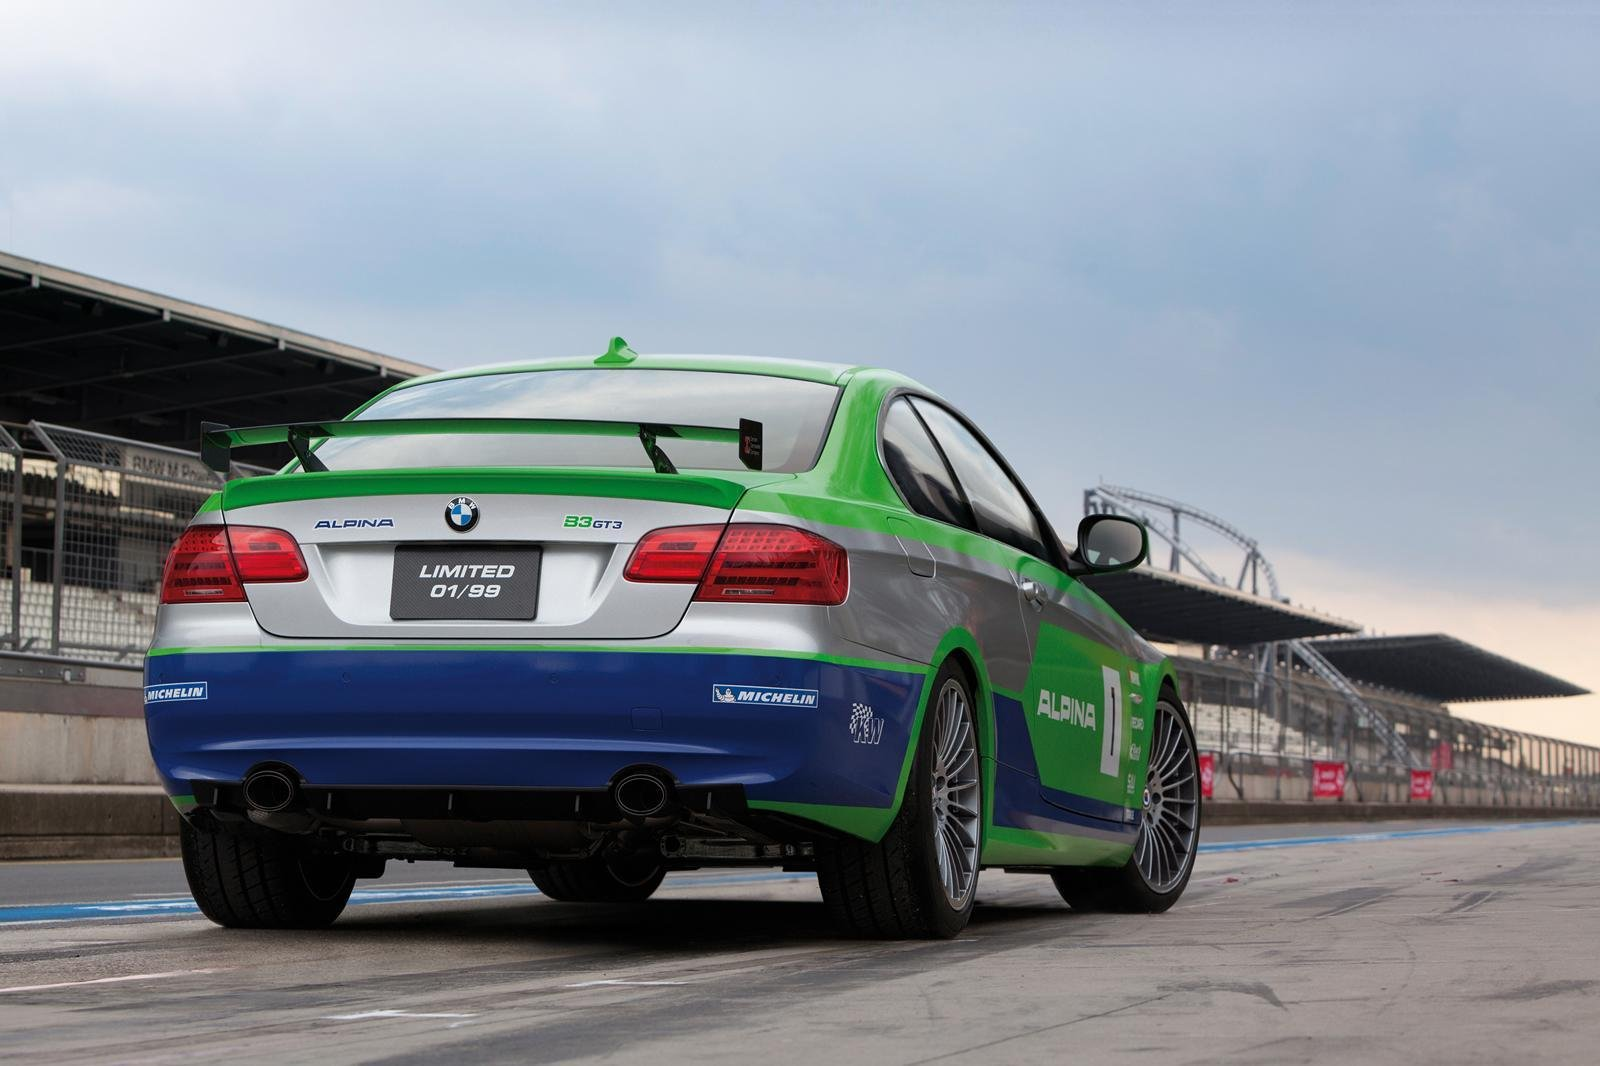 http://pictures.topspeed.com/IMG/crop/201111/bmw-b3-gt3-by-alpina_1600x0w.jpg